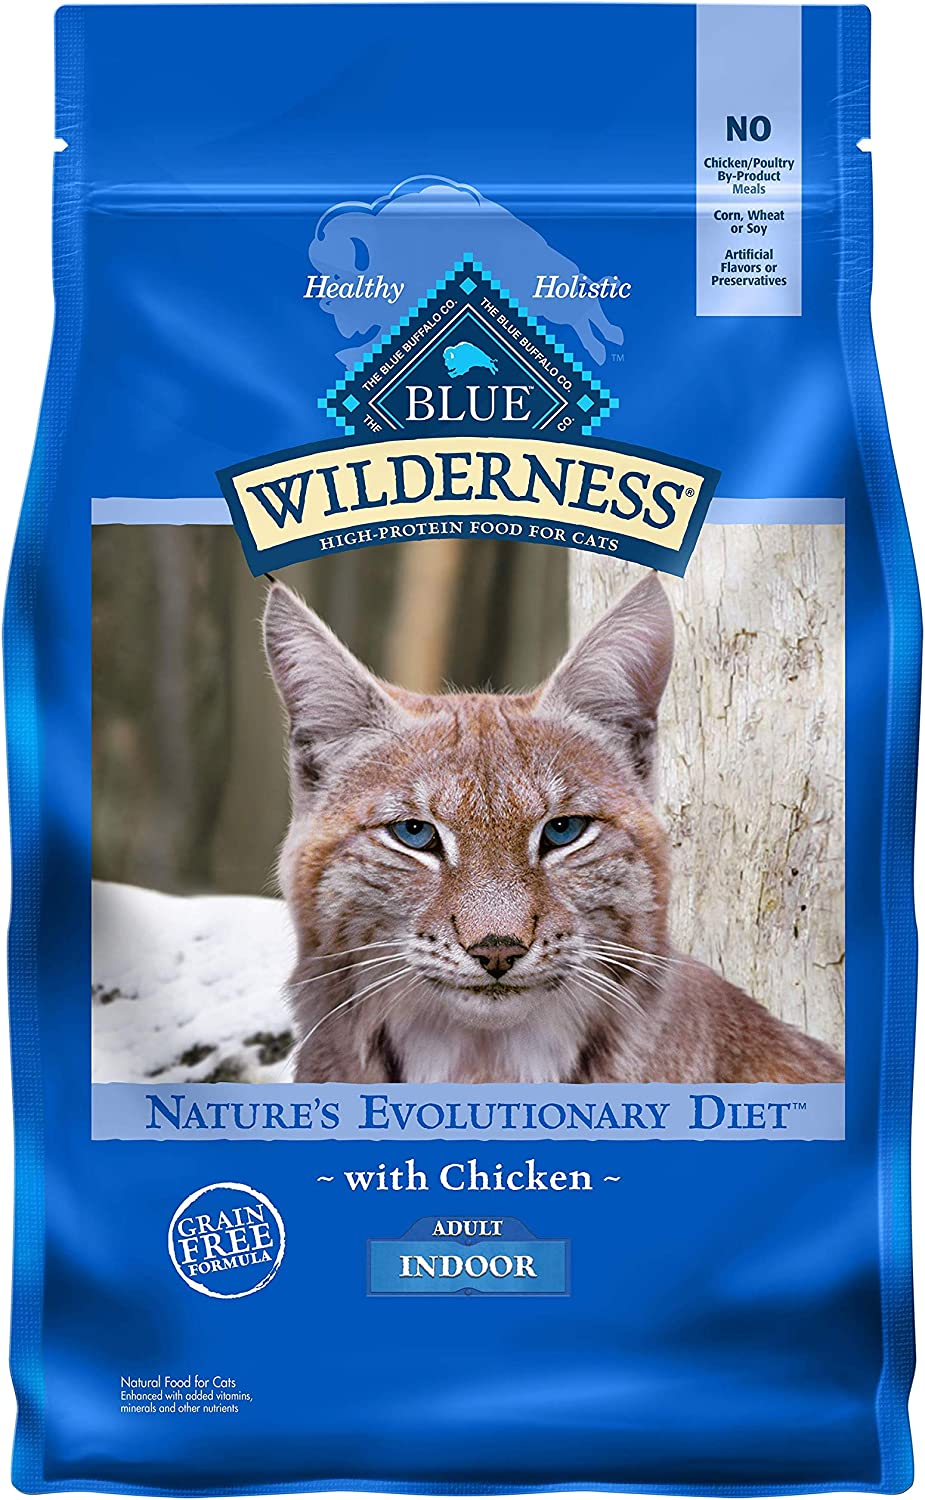 Blue Buffalo Wilderness High Protein Natural Max 88% OFF Free I Grain Adult 5 popular